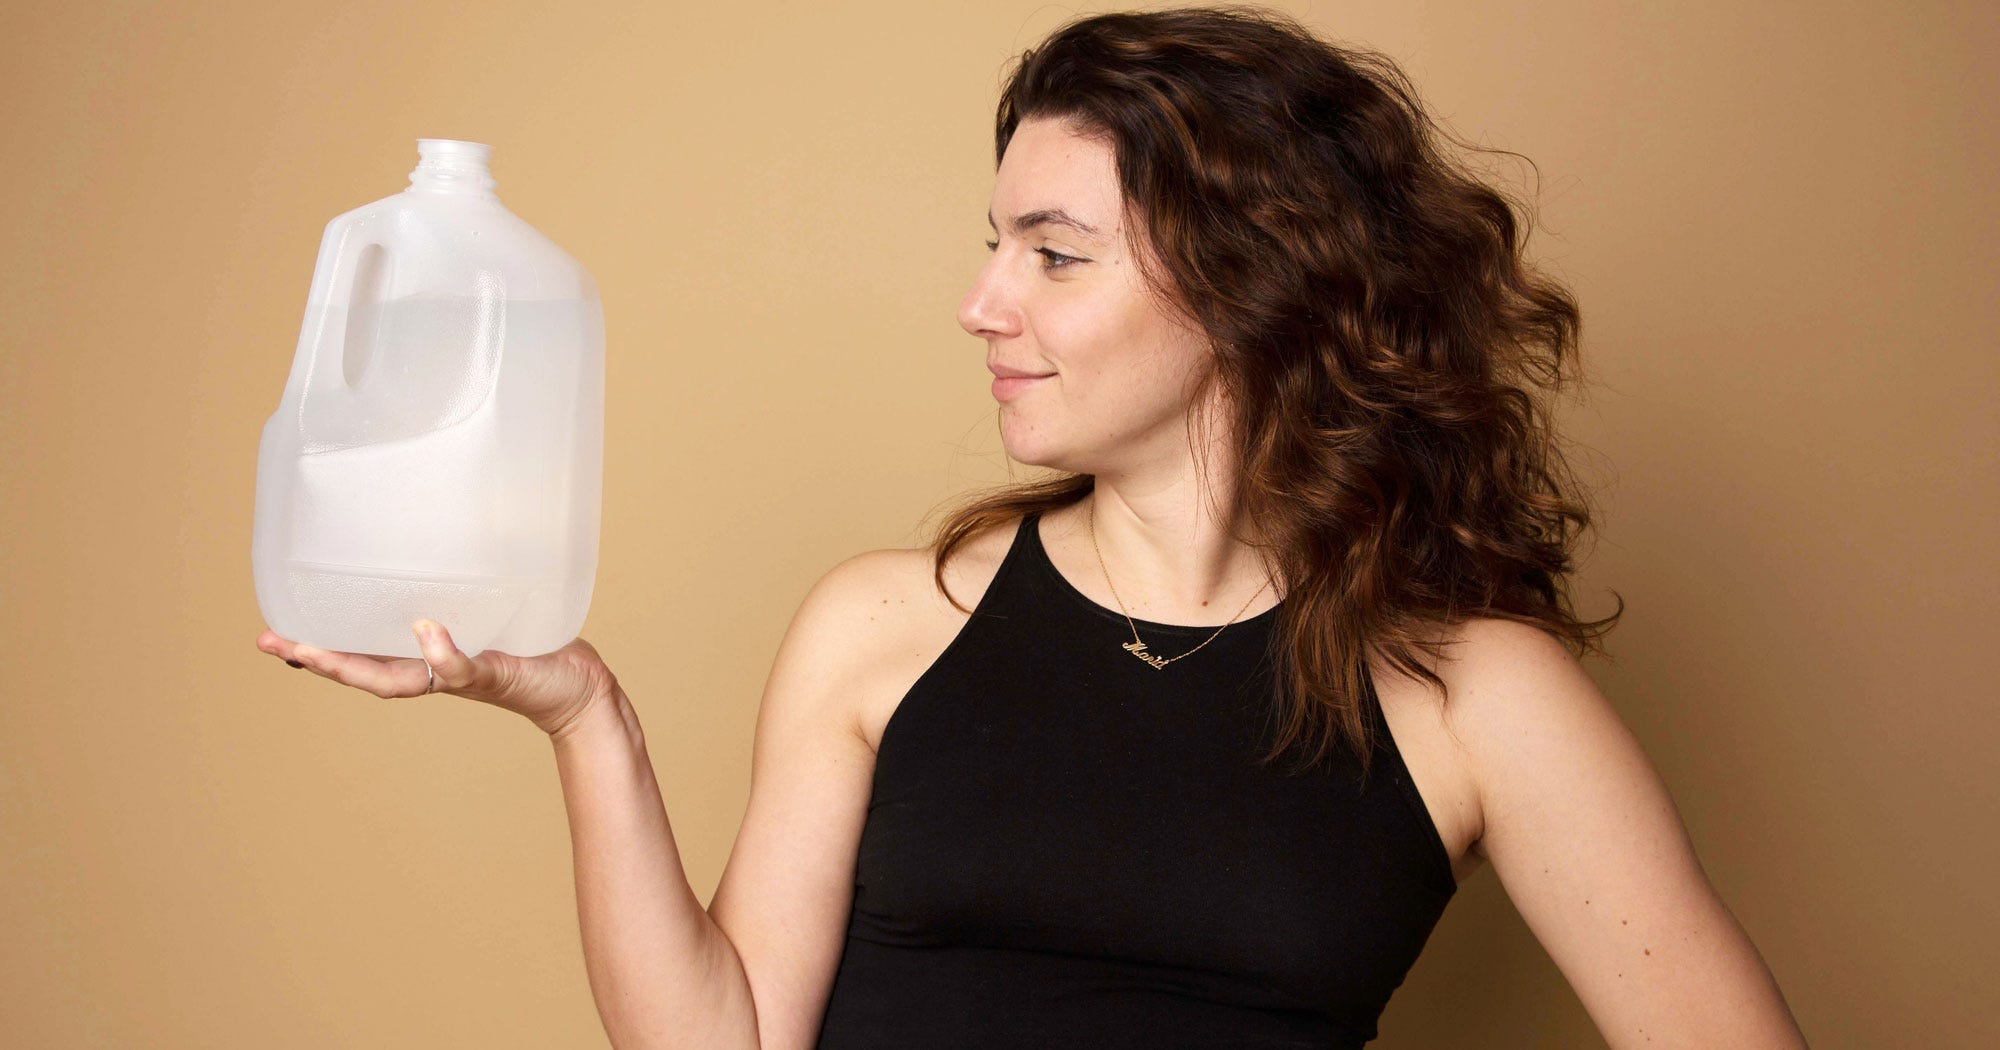 I Drank A Gallon Of Water A Day For Better Skin — & Here's What Happened